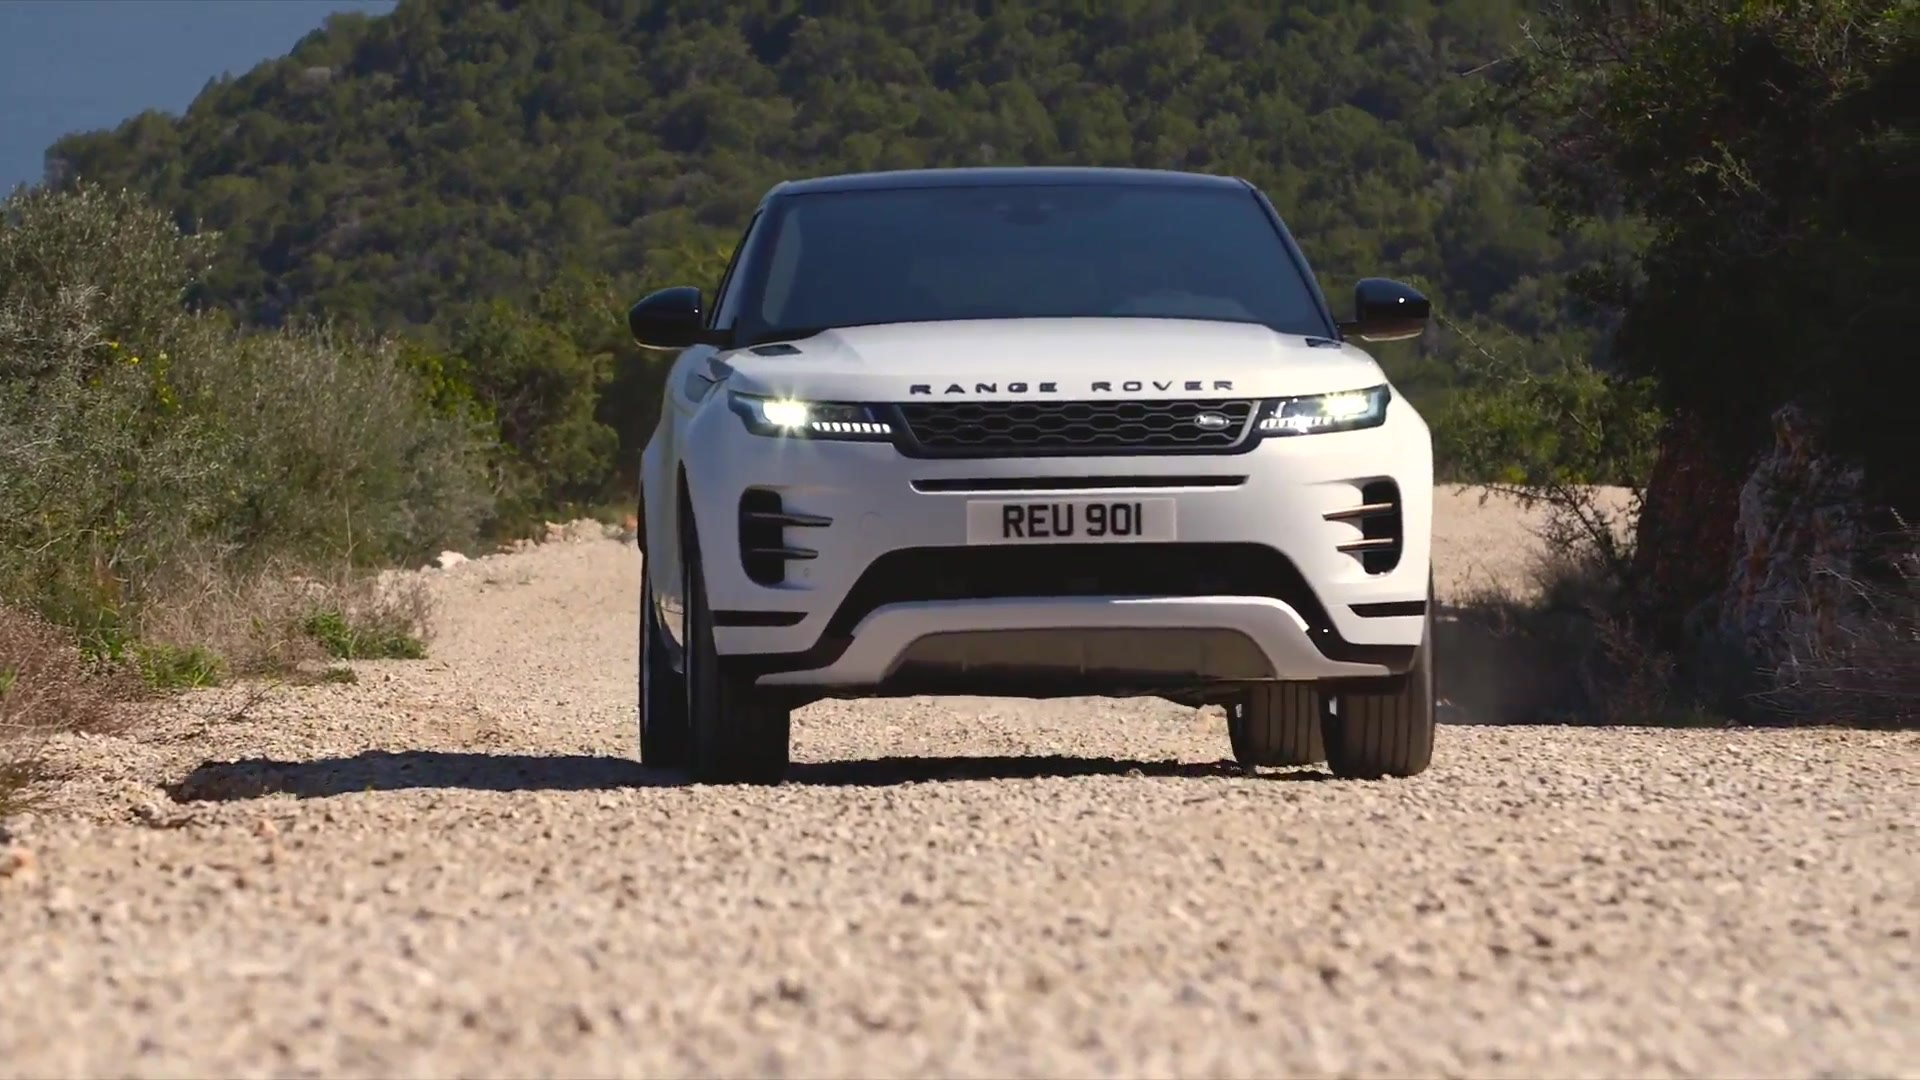 New Range Rover Evoque R-Dynamic S derivative in Yulong White Off-road  driving